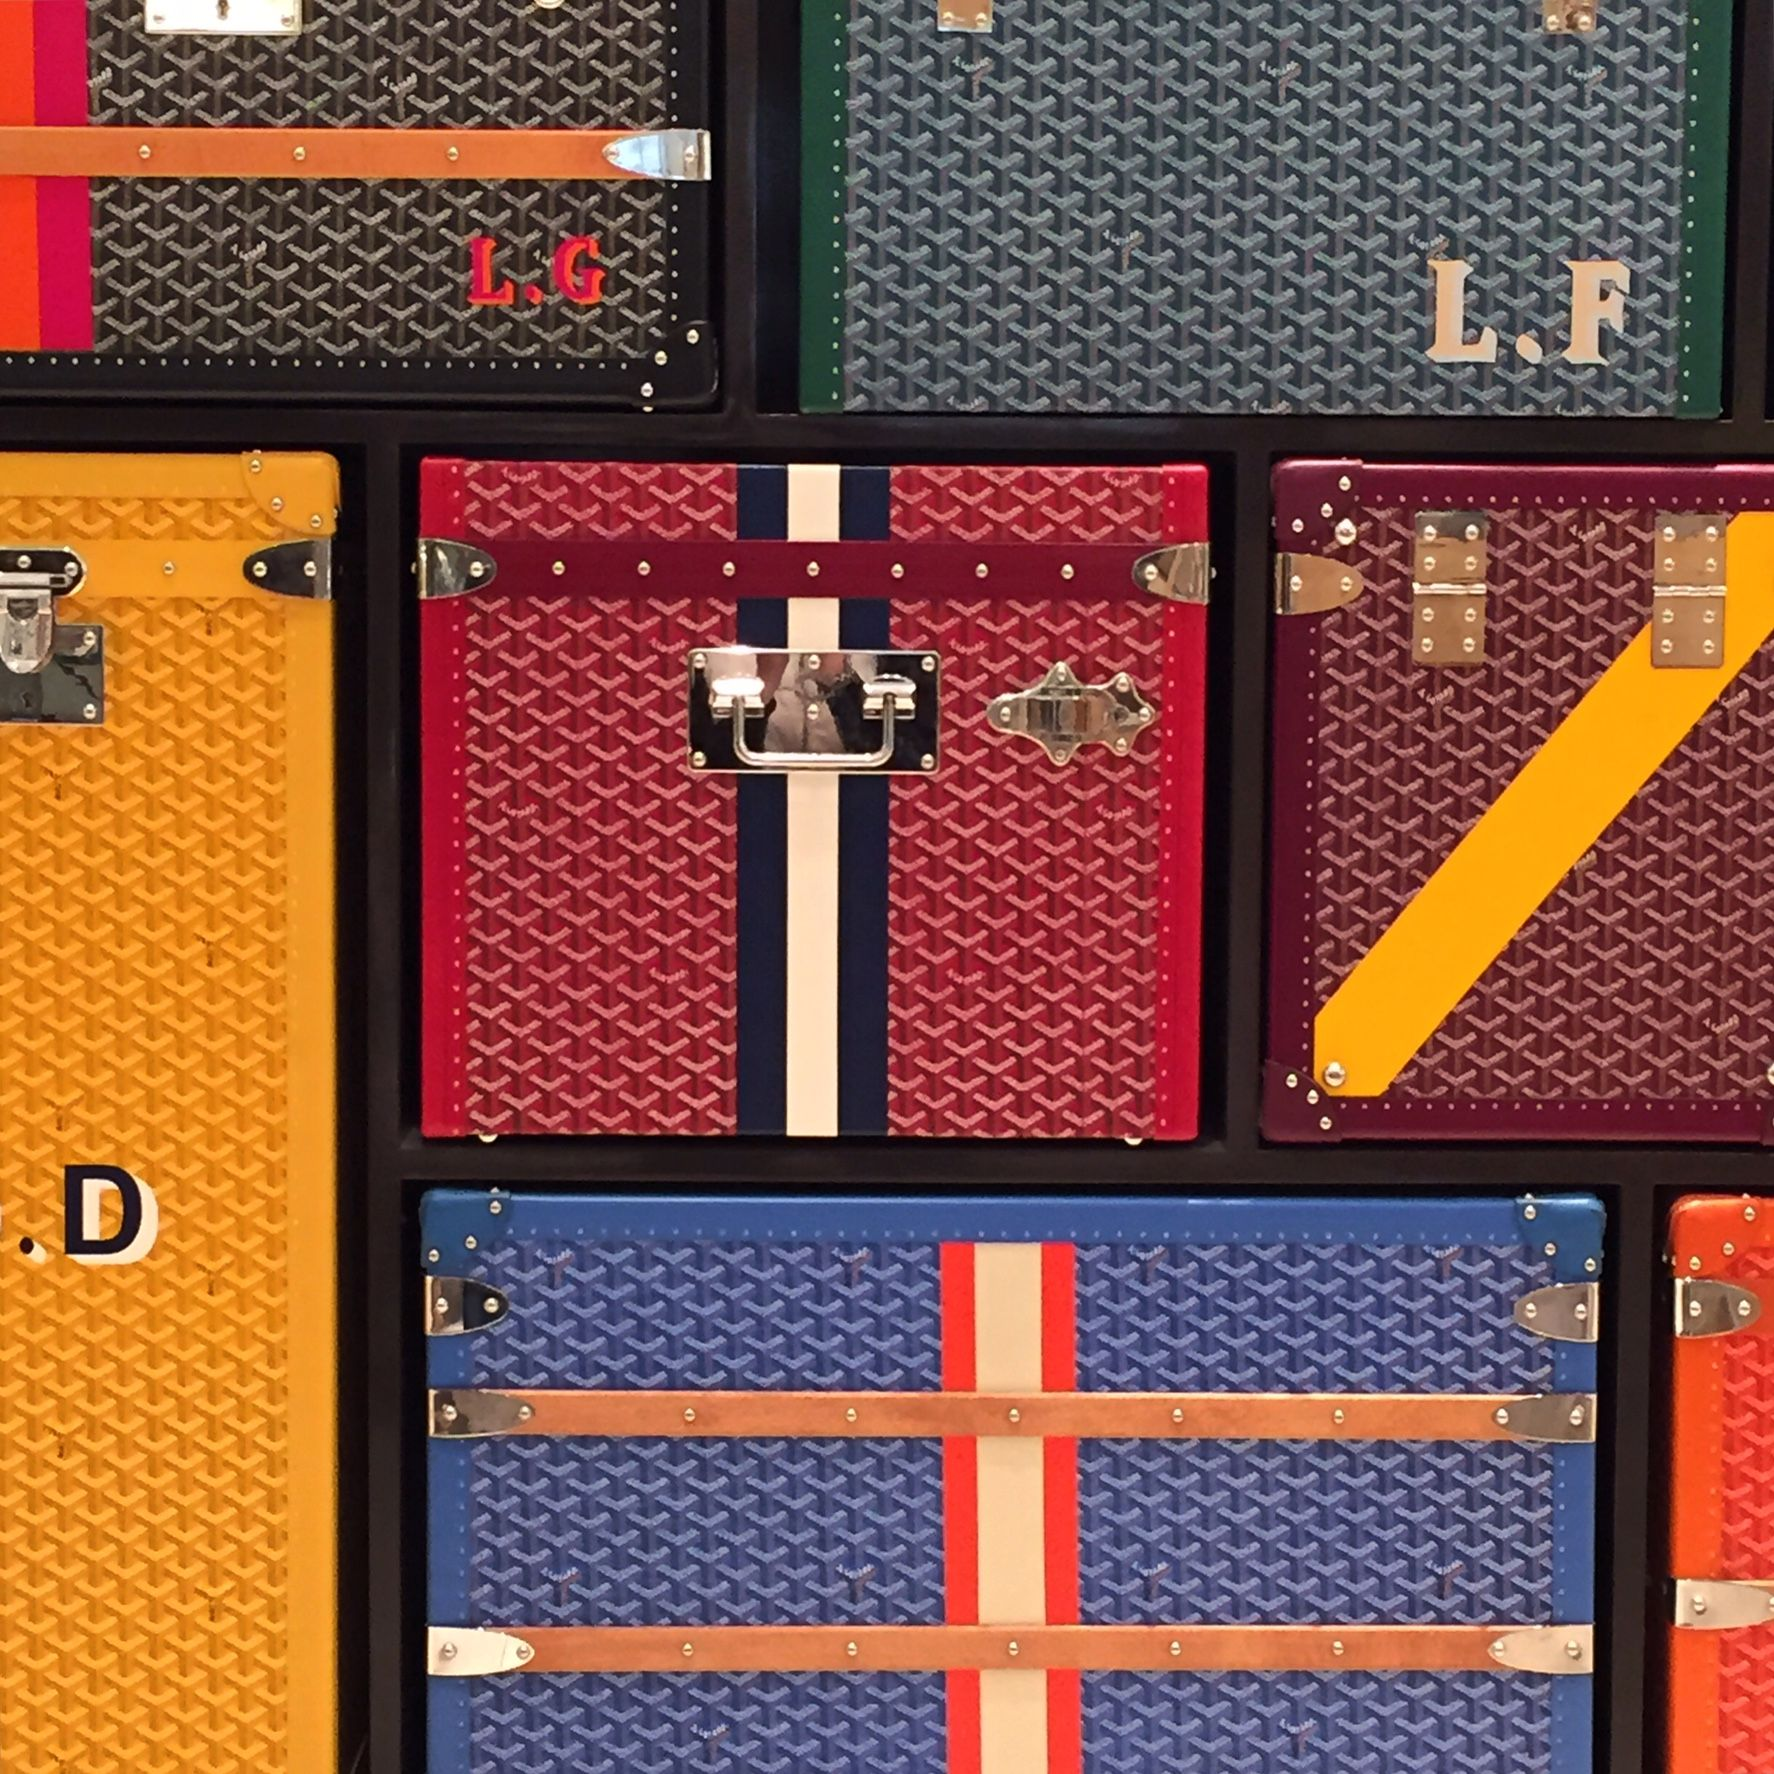 Goyard Take Me Away Punchutton In Neiman Marcus Beverly Hills